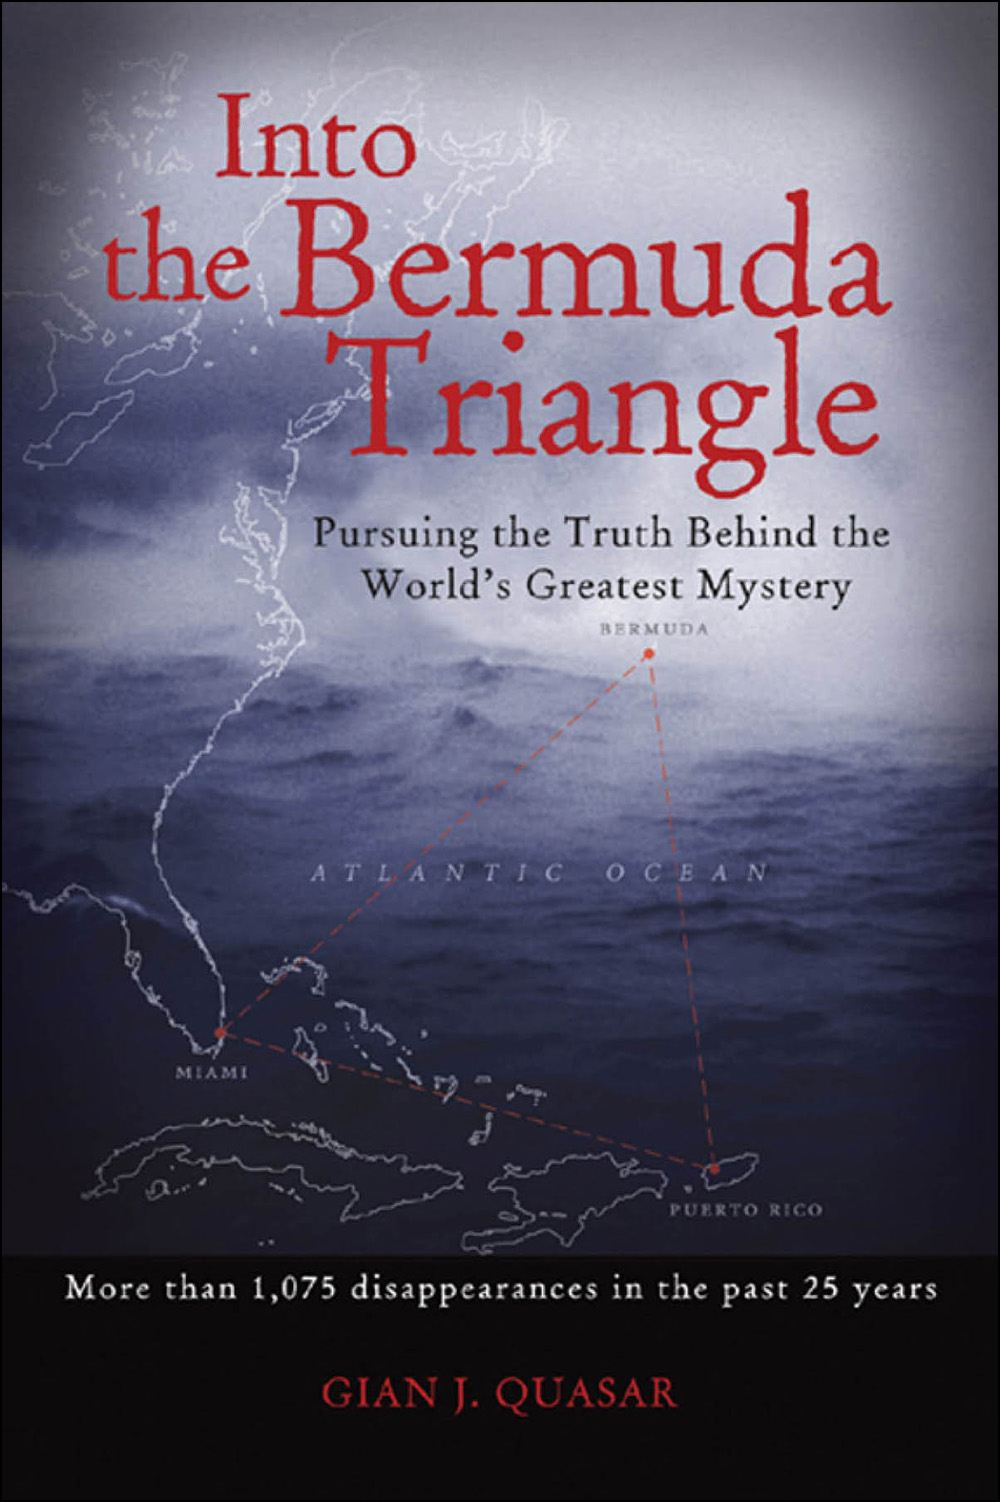 Into the Bermuda Triangle : Pursuing the Truth Behind the World's Greatest Mystery